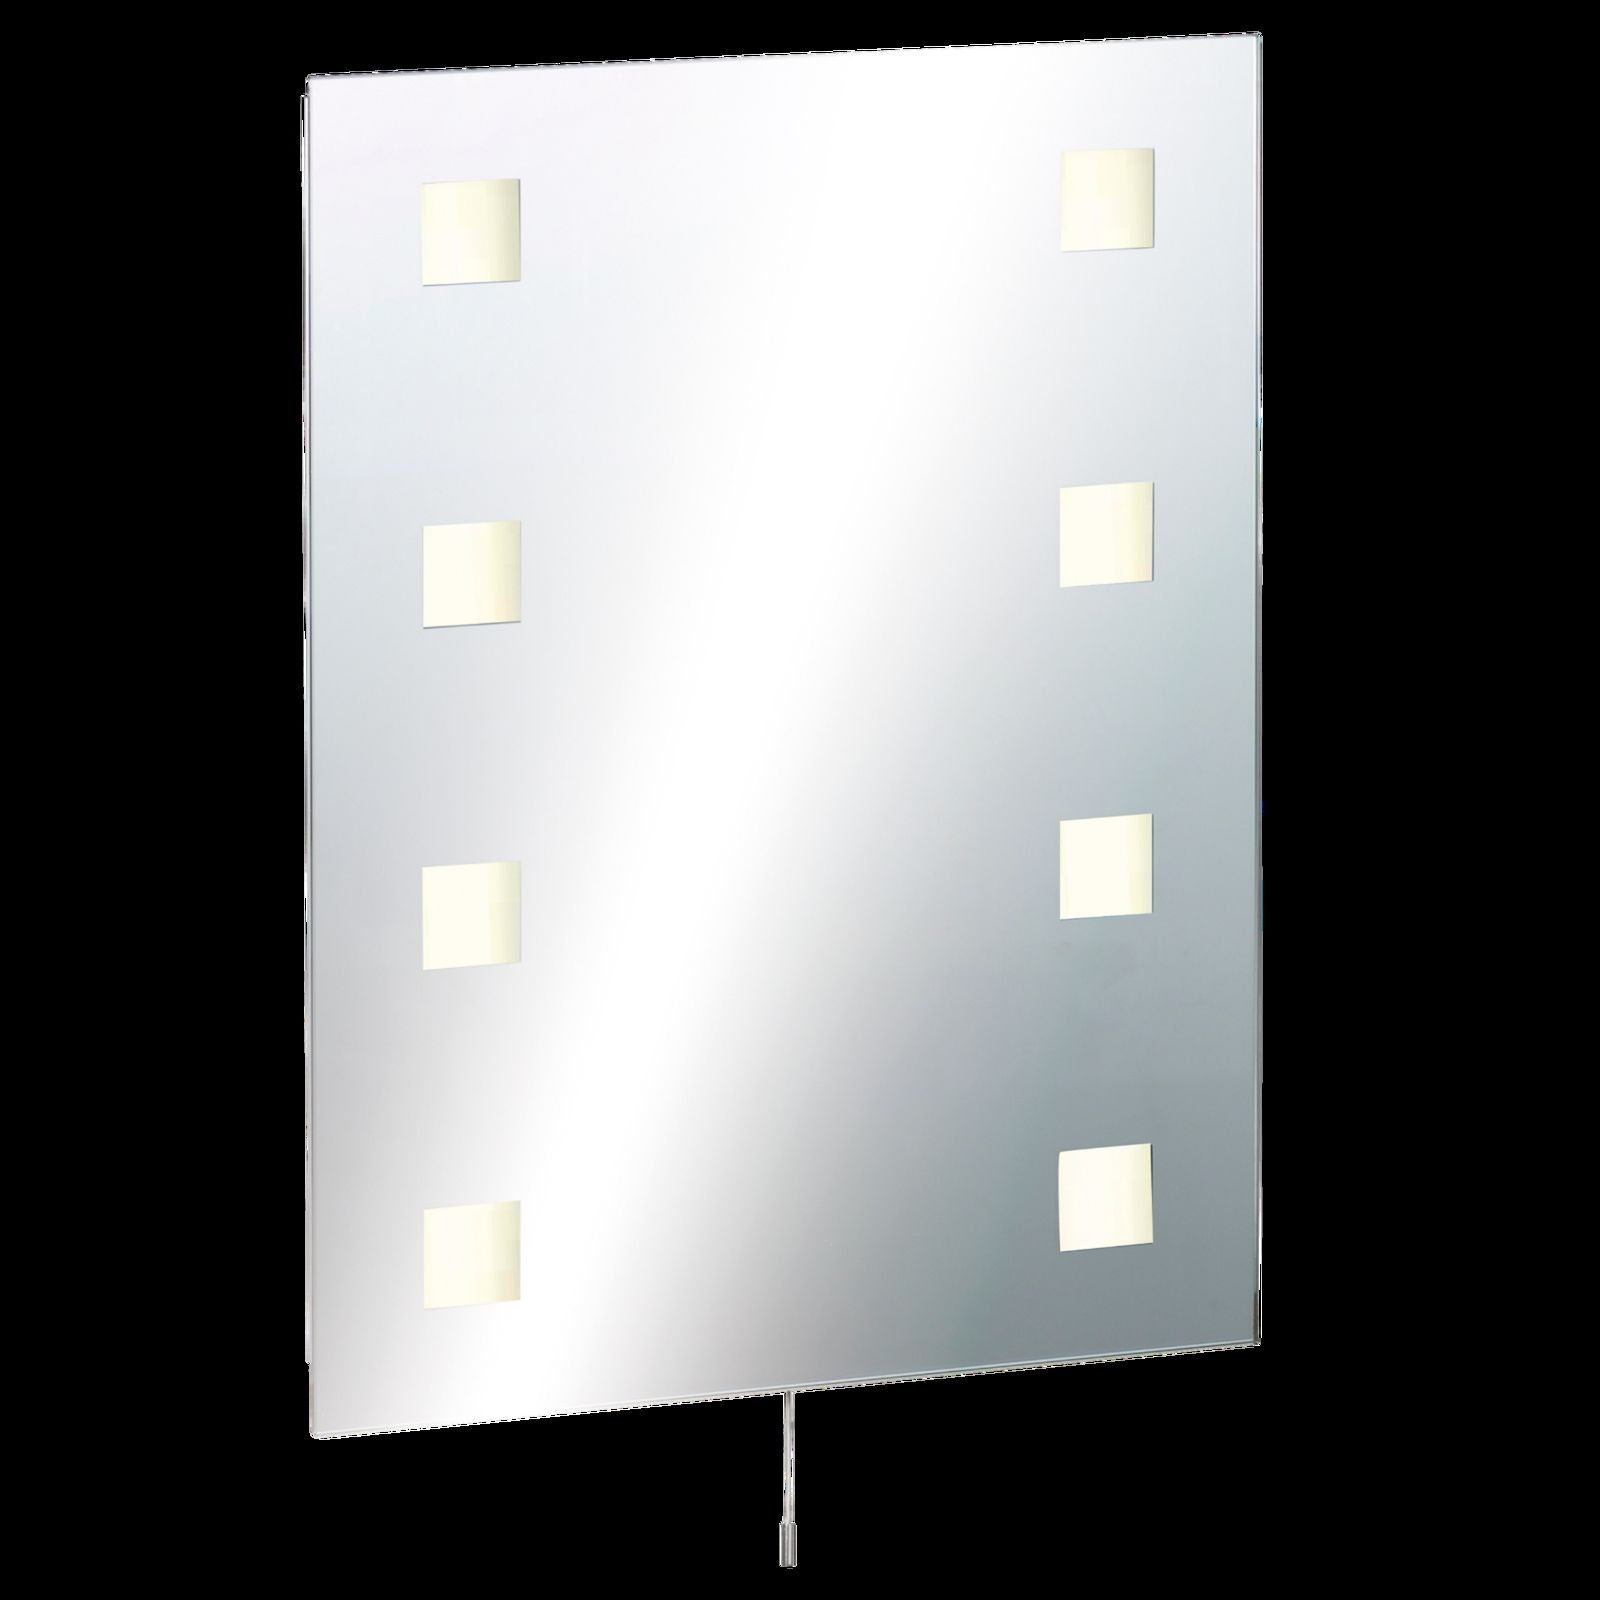 RCT6045SD - Illuminated Bathroom Mirror c/w Shaver Socket, Demister ...